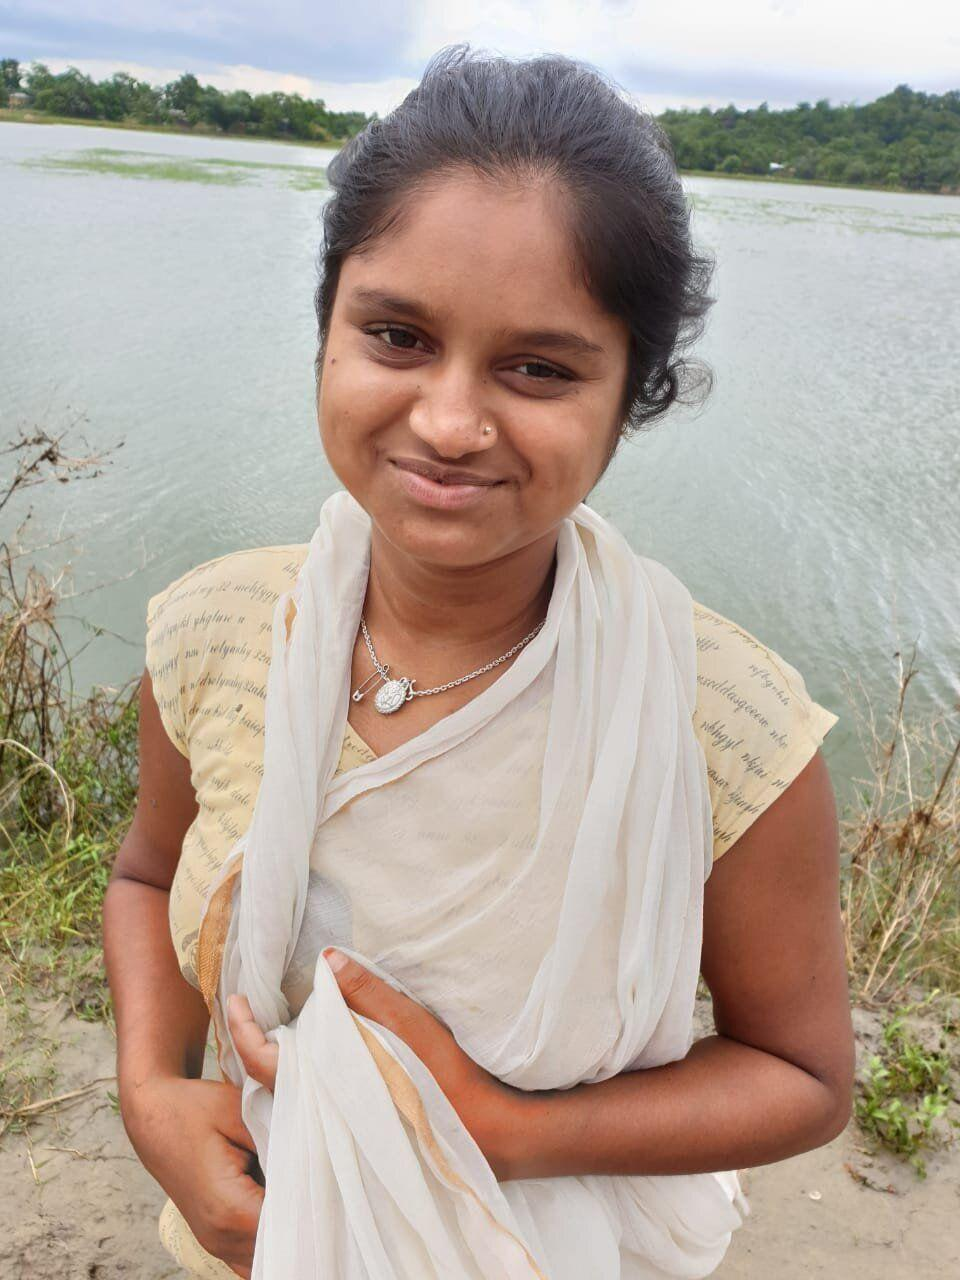 15-year-old Kalpana is uneducated, as she had to discontinue school after landing in a detention camp. (Photo: )